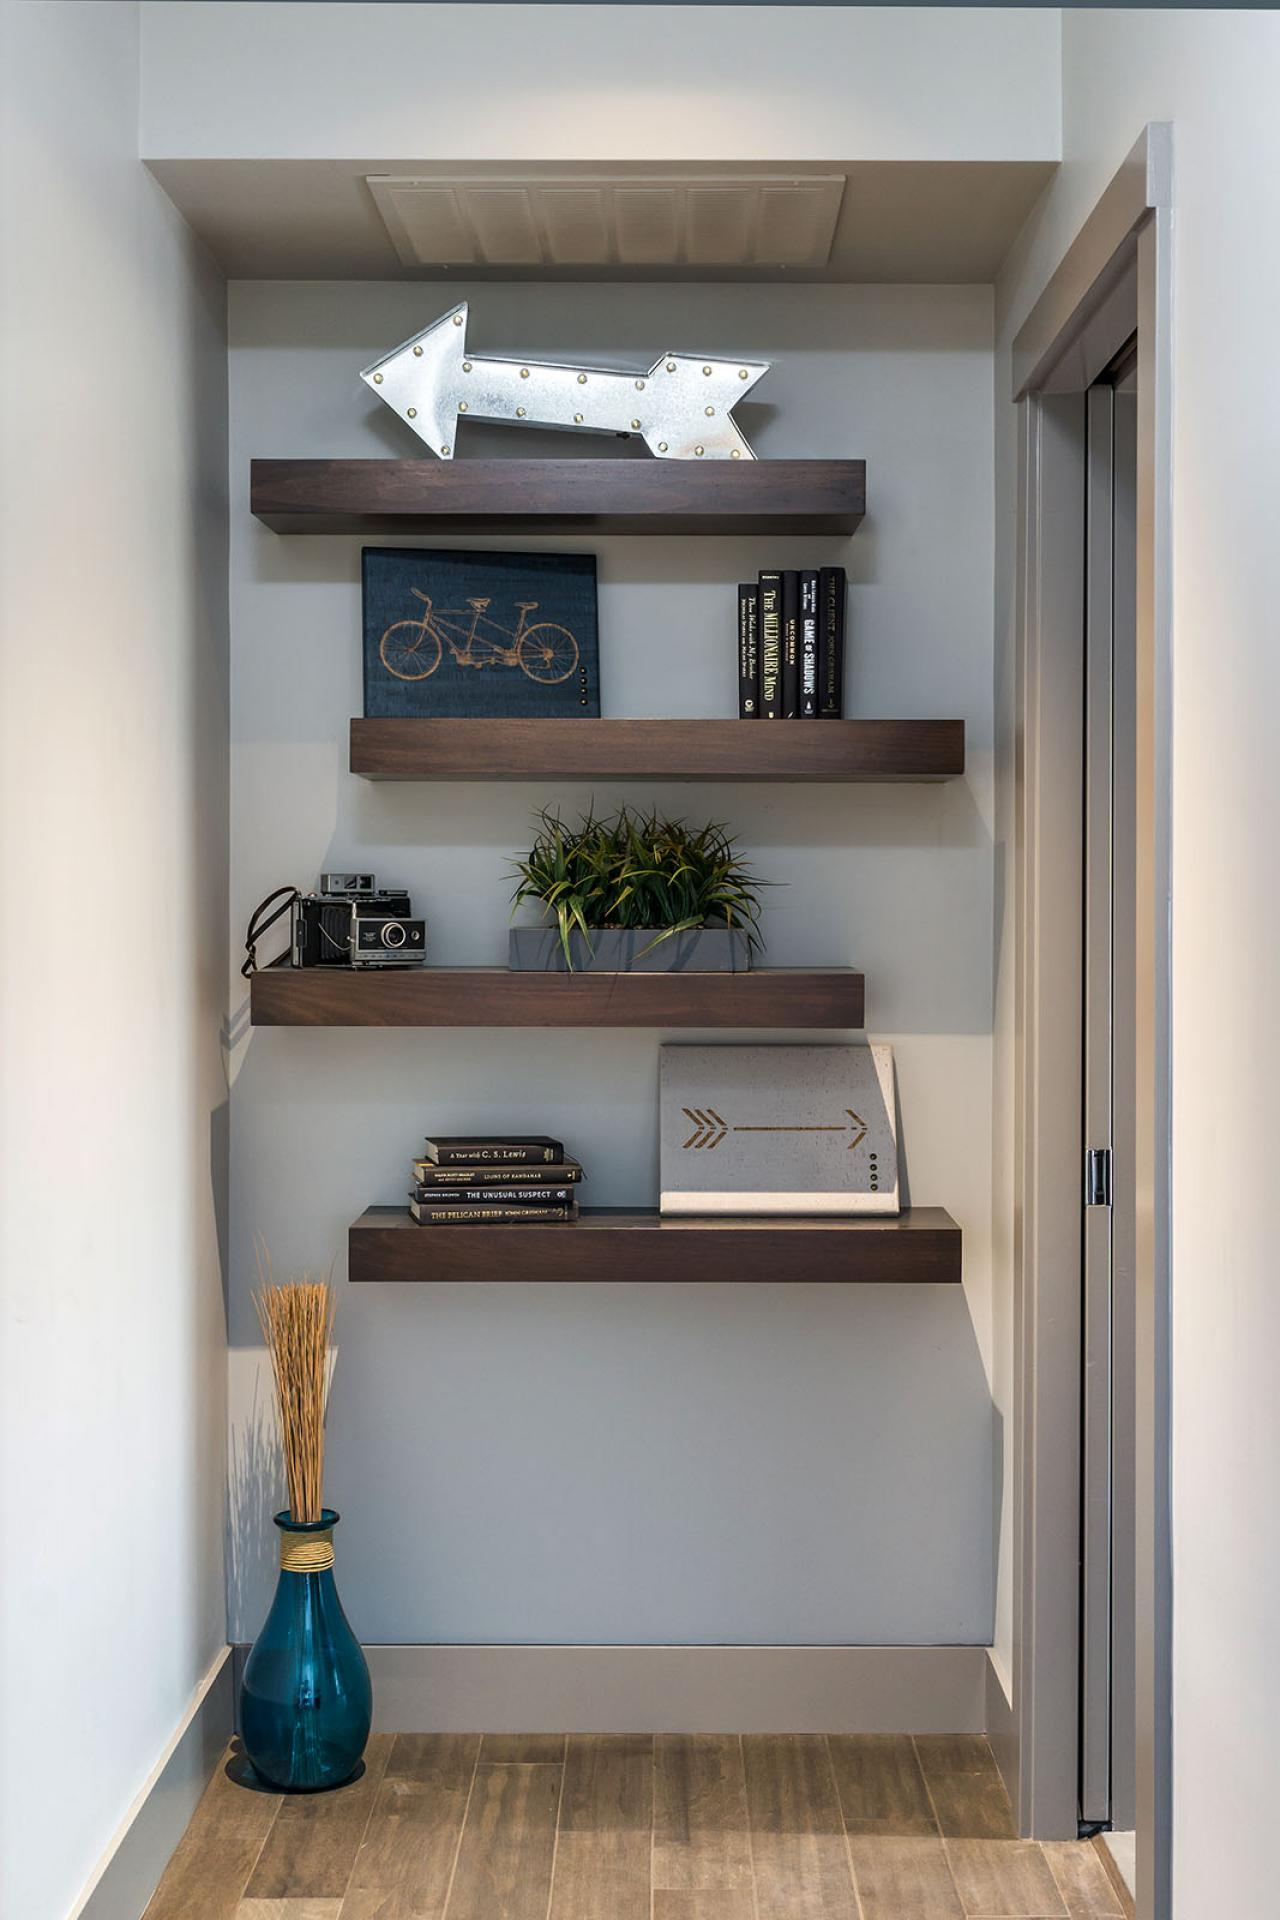 ways decorate with floating shelves decorating kitchen decorative contemporary hallway diy wood shoe shelf bunnings melton ikea black wall unit bracketless two foot wide tall